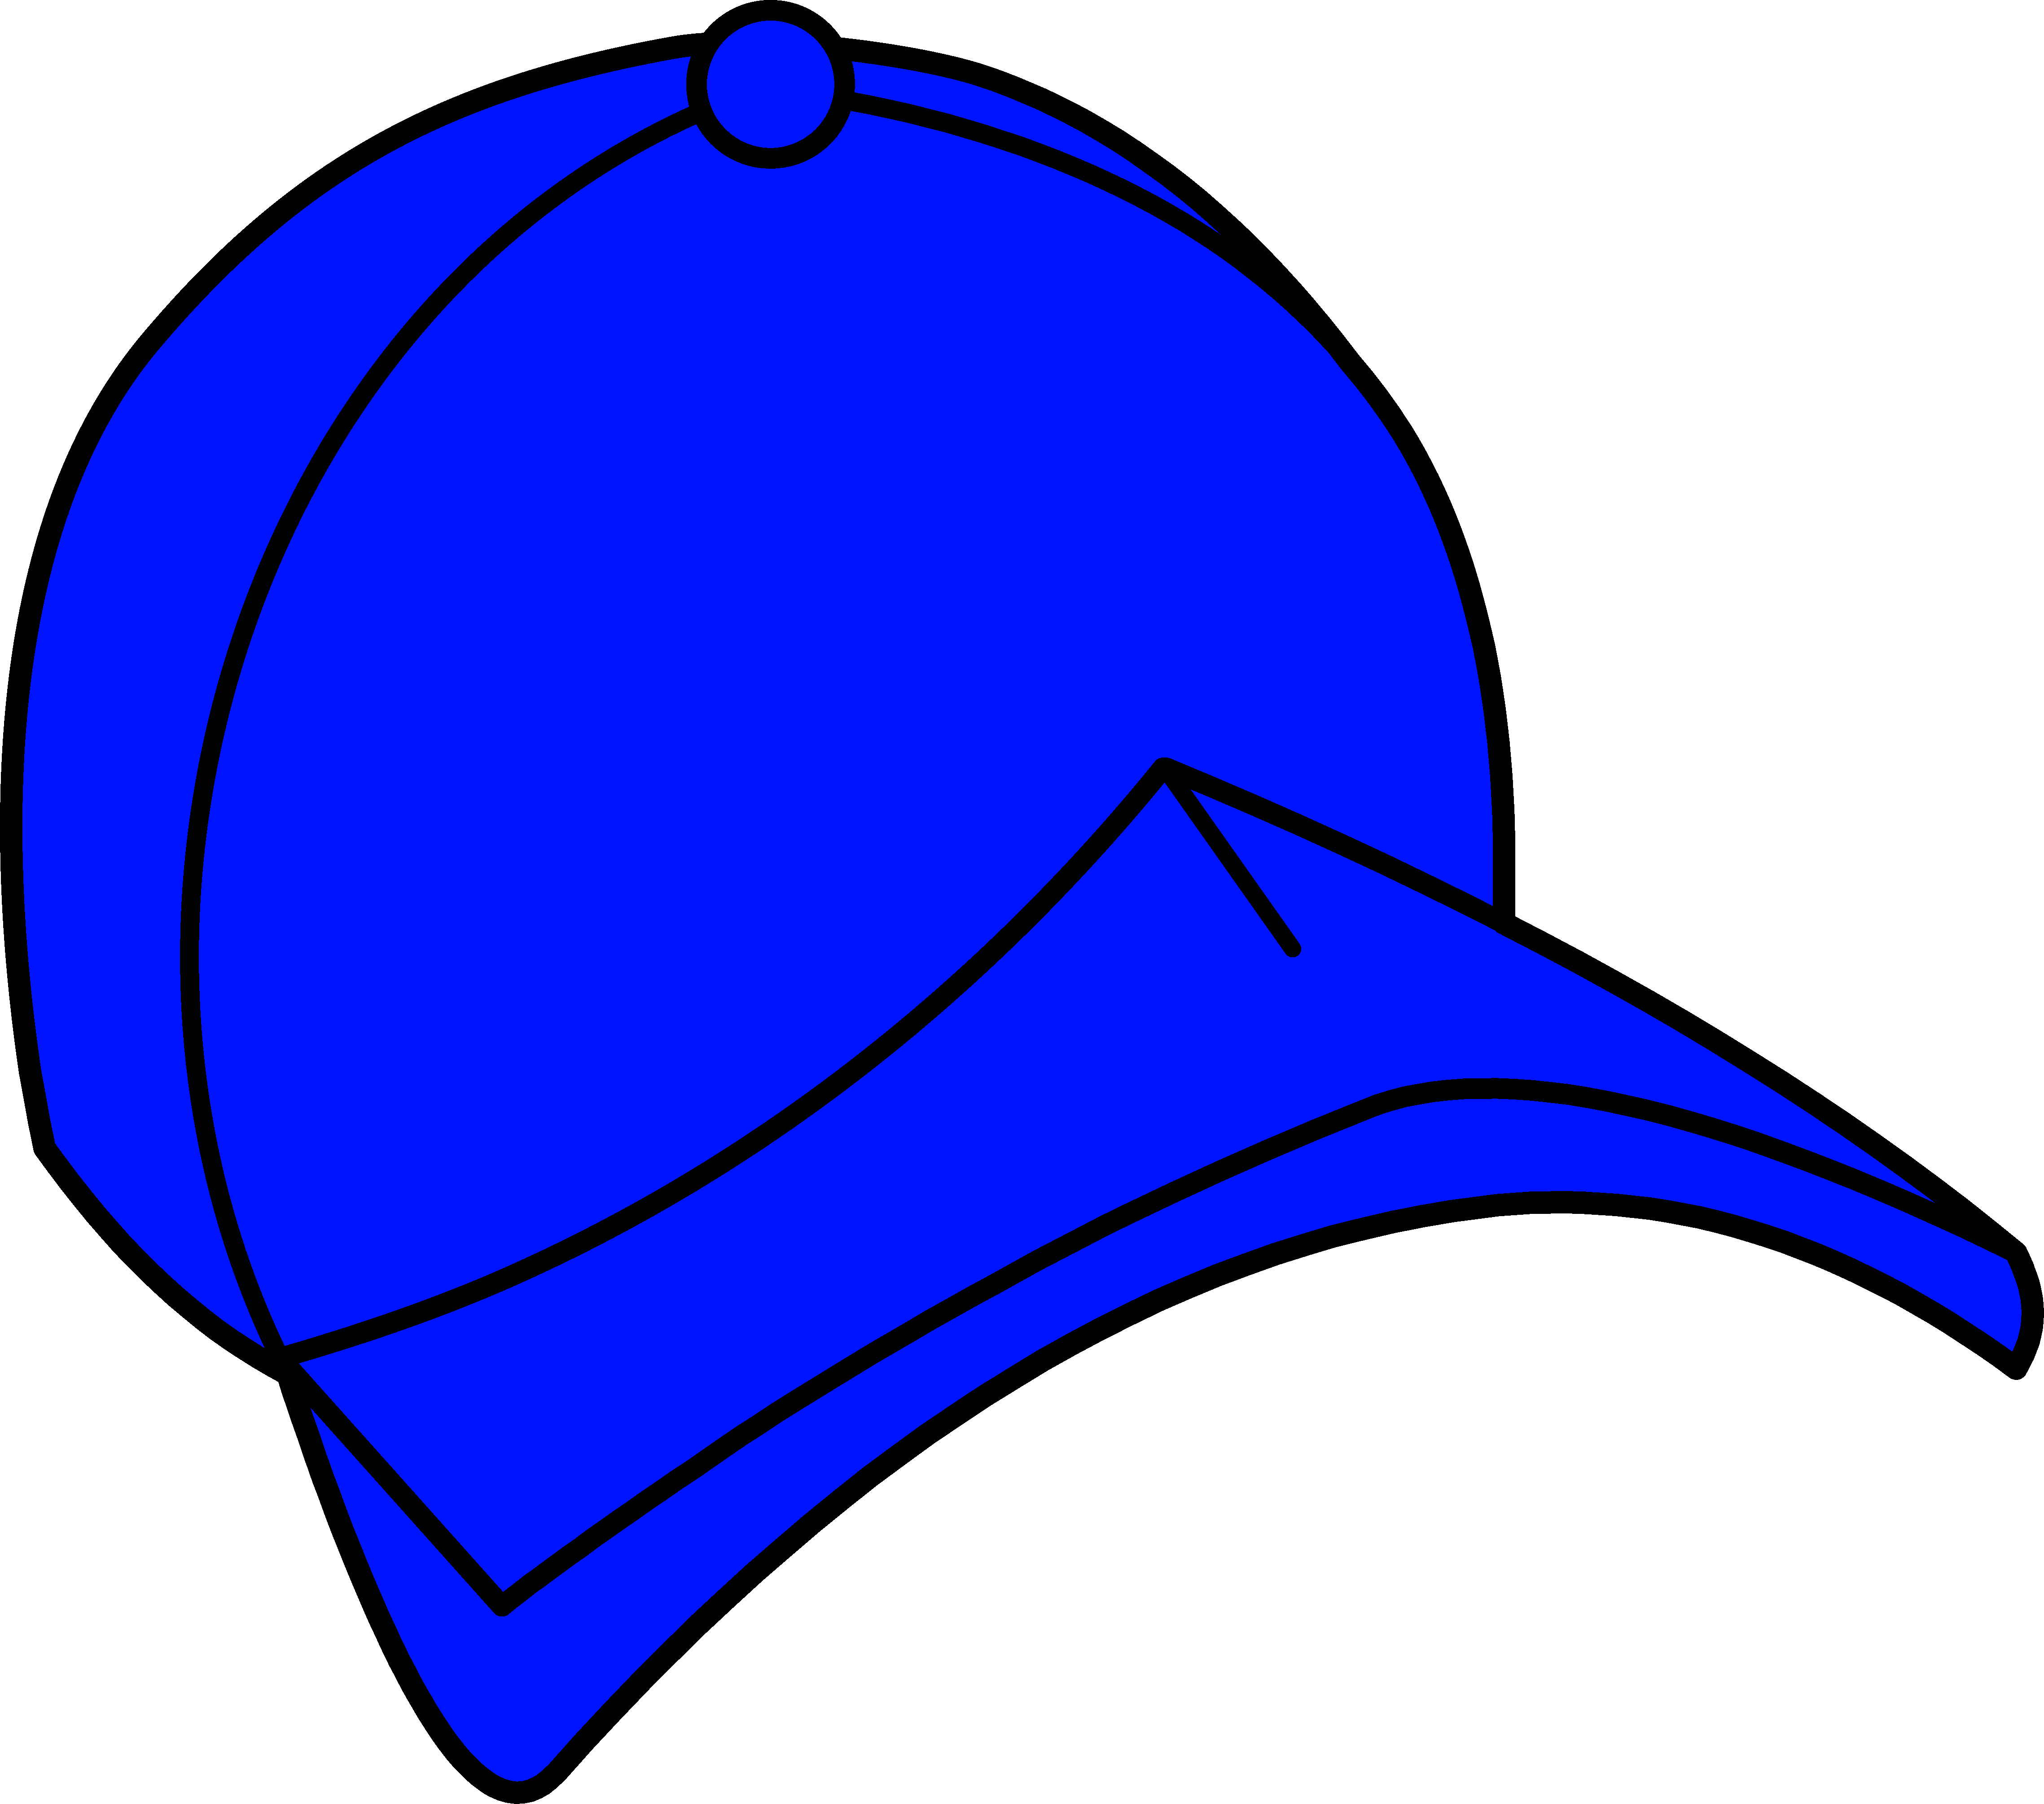 Smurf hat clipart clip royalty free download Free Smurf Hat Png, Download Free Clip Art, Free Clip Art on ... clip royalty free download